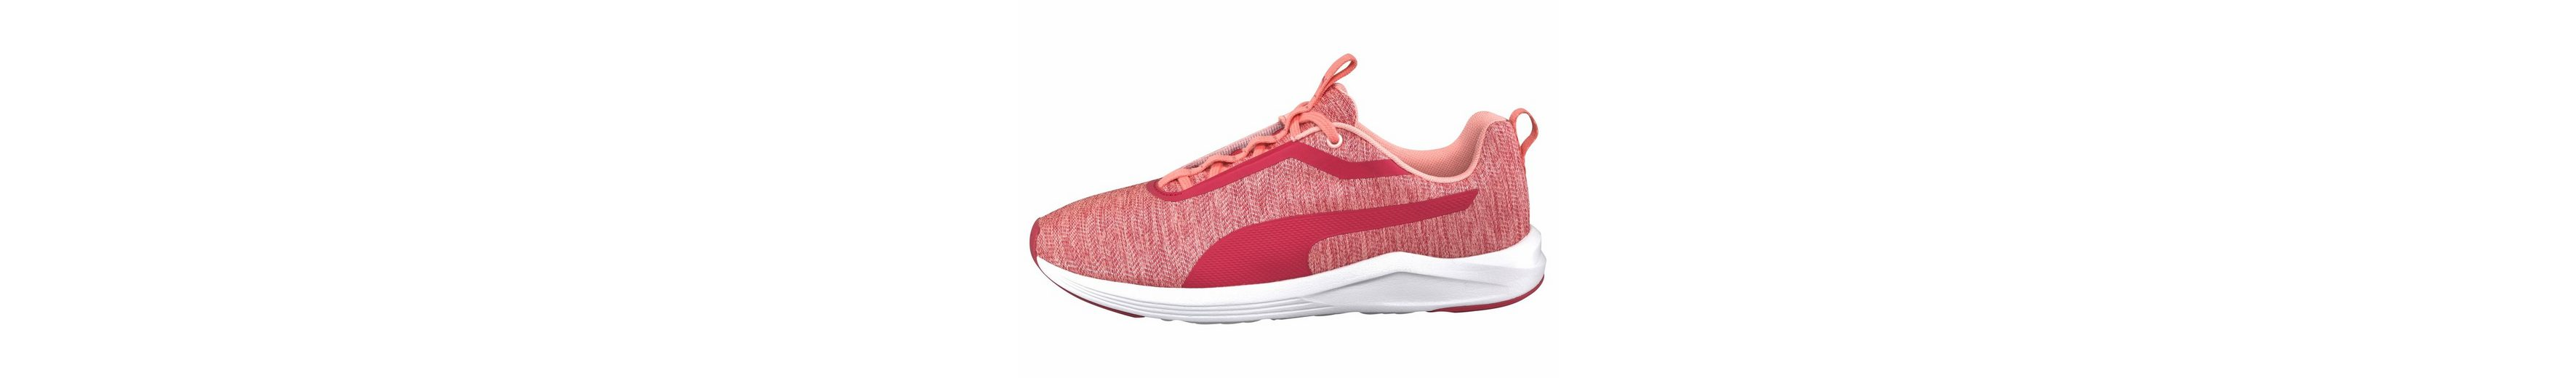 PUMA Prowl Shimmer Womens Fitnessschuh Outlet-Store Online-Verkauf T3MgqdG